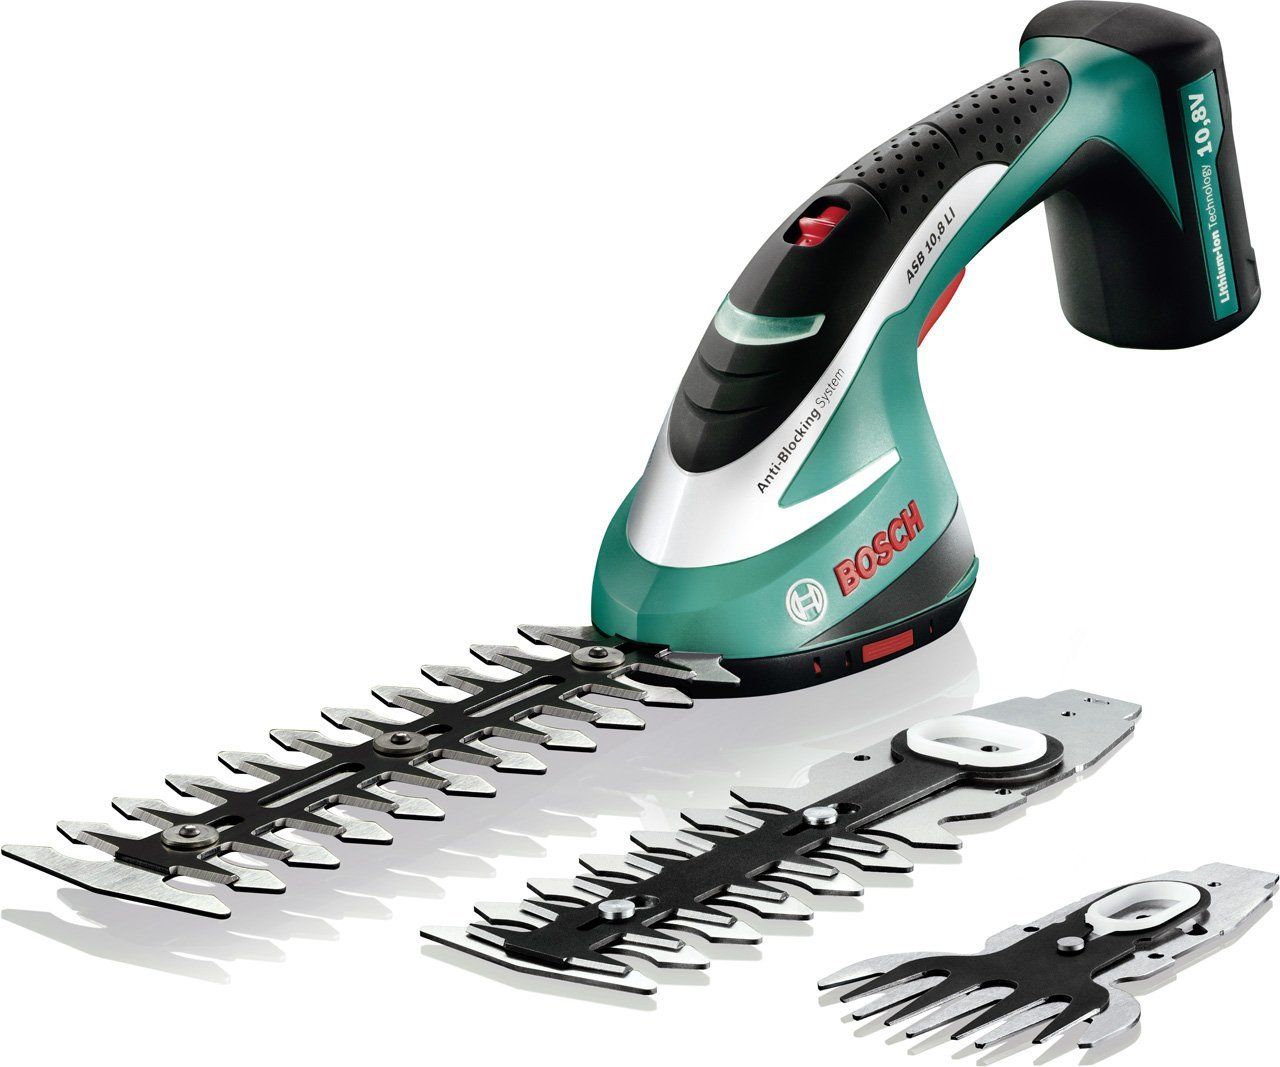 Bosch ASB 10.8 LI SETCordless Shears 0600856301